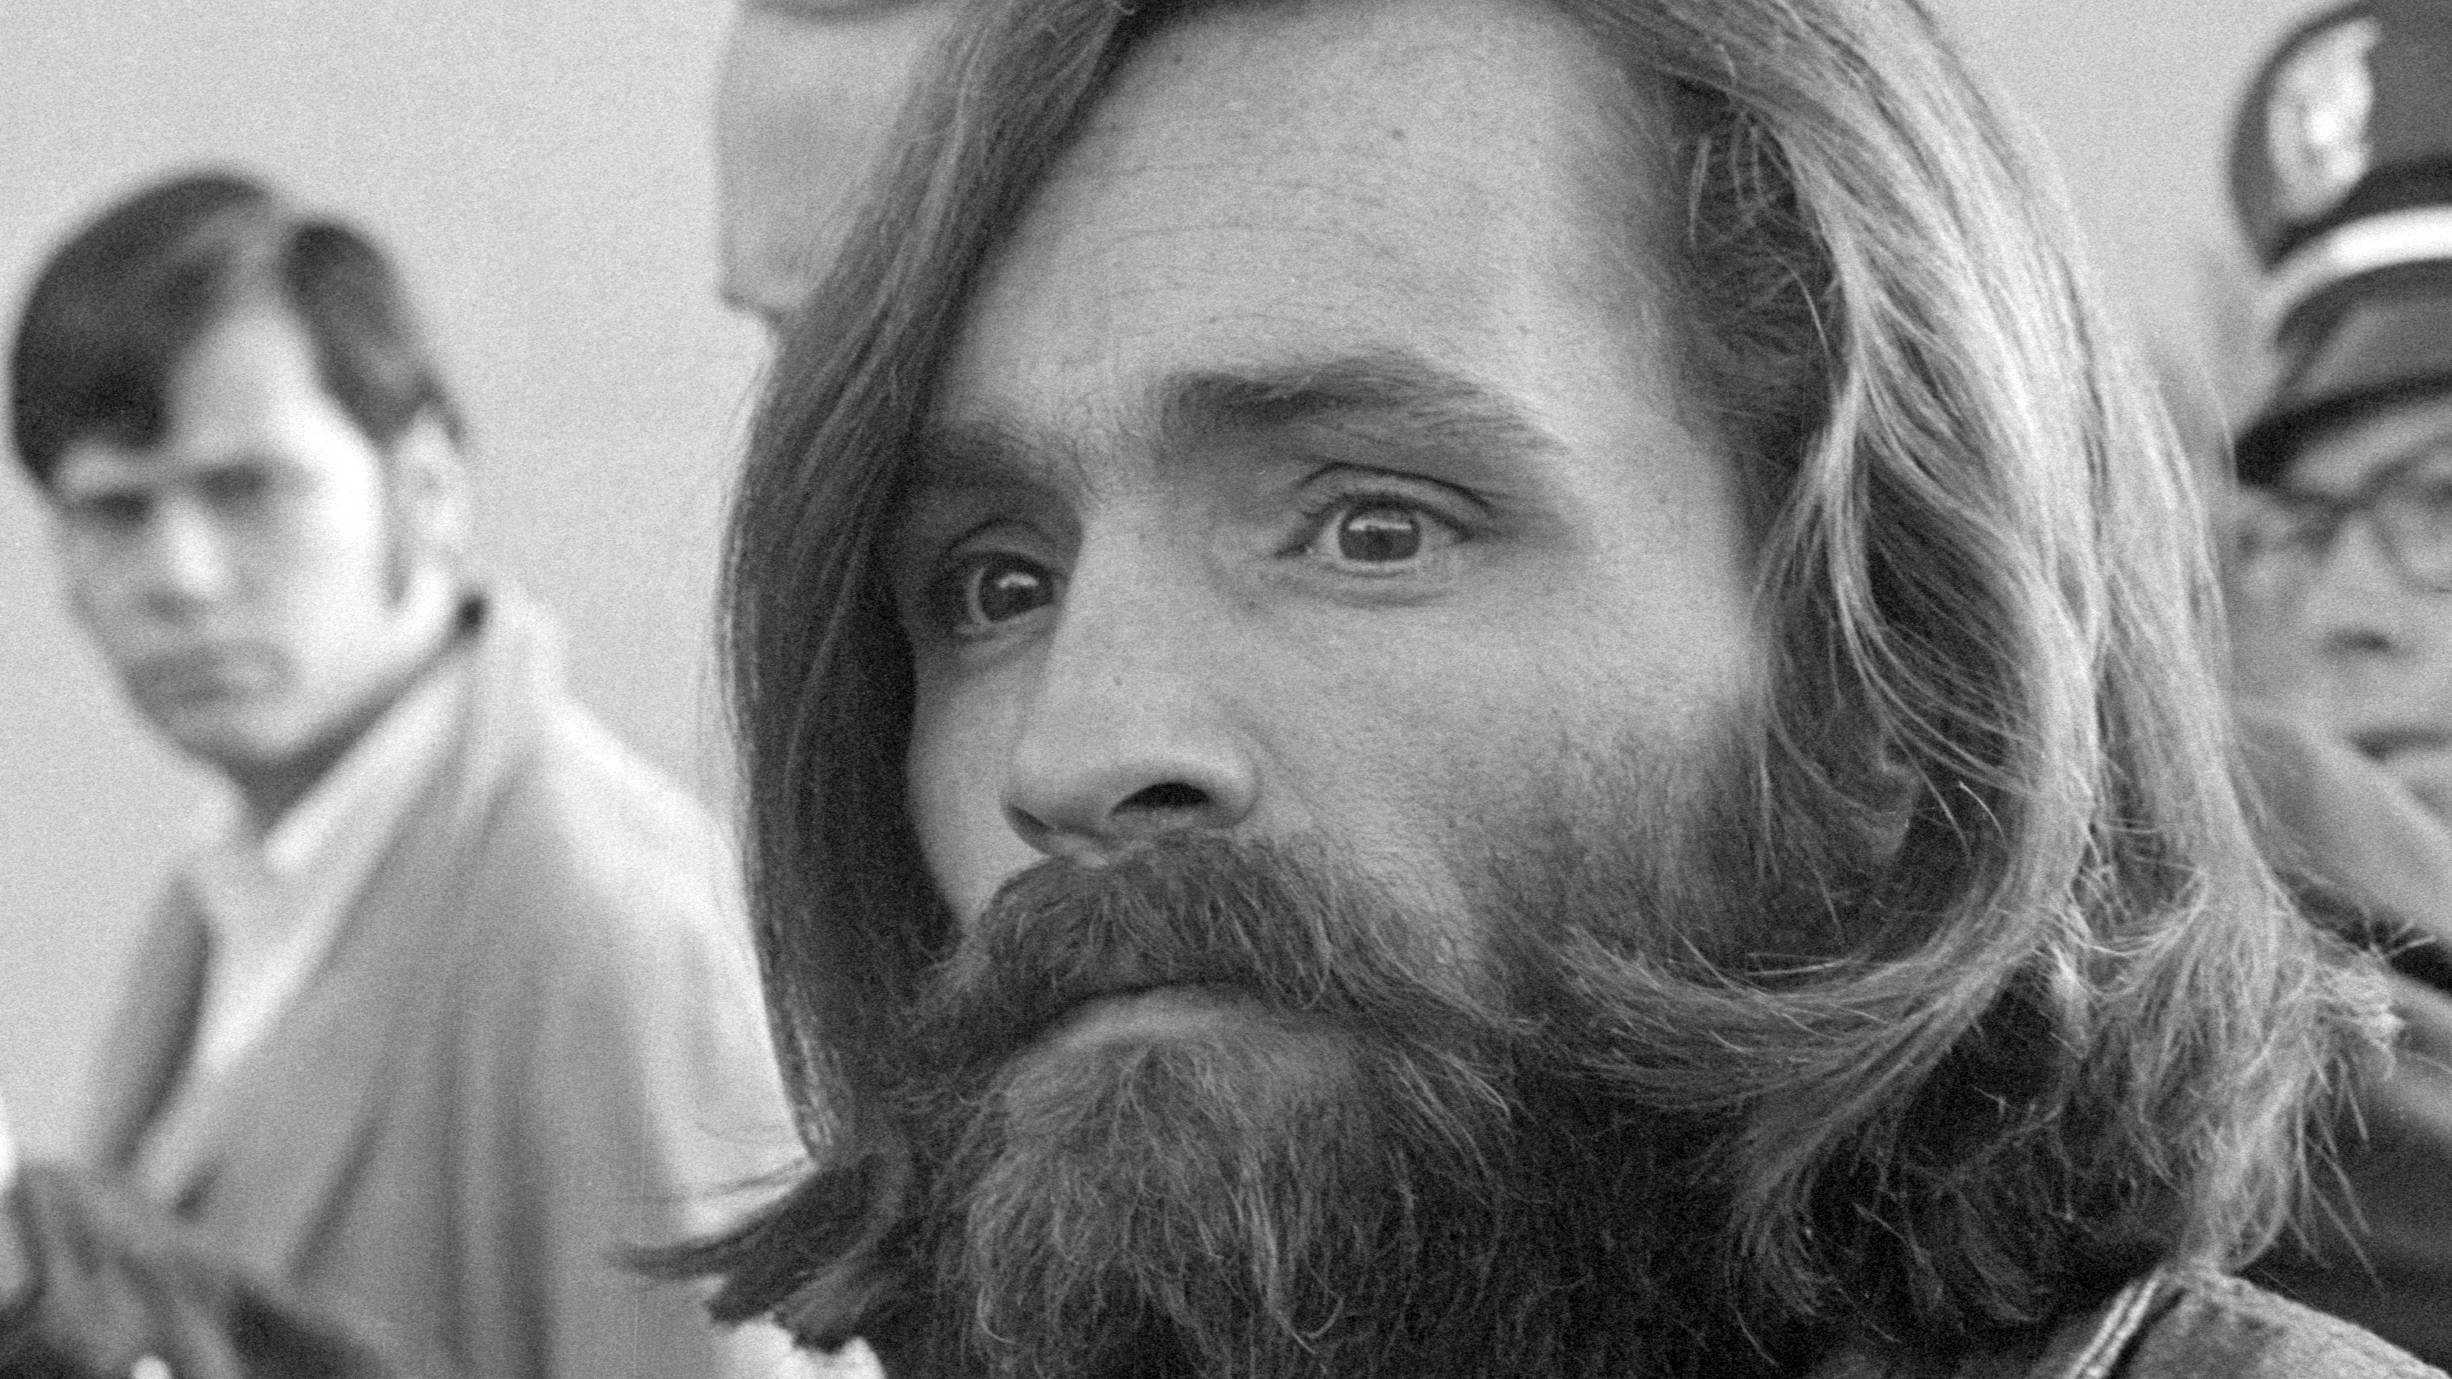 Which songs did Charles Manson write?